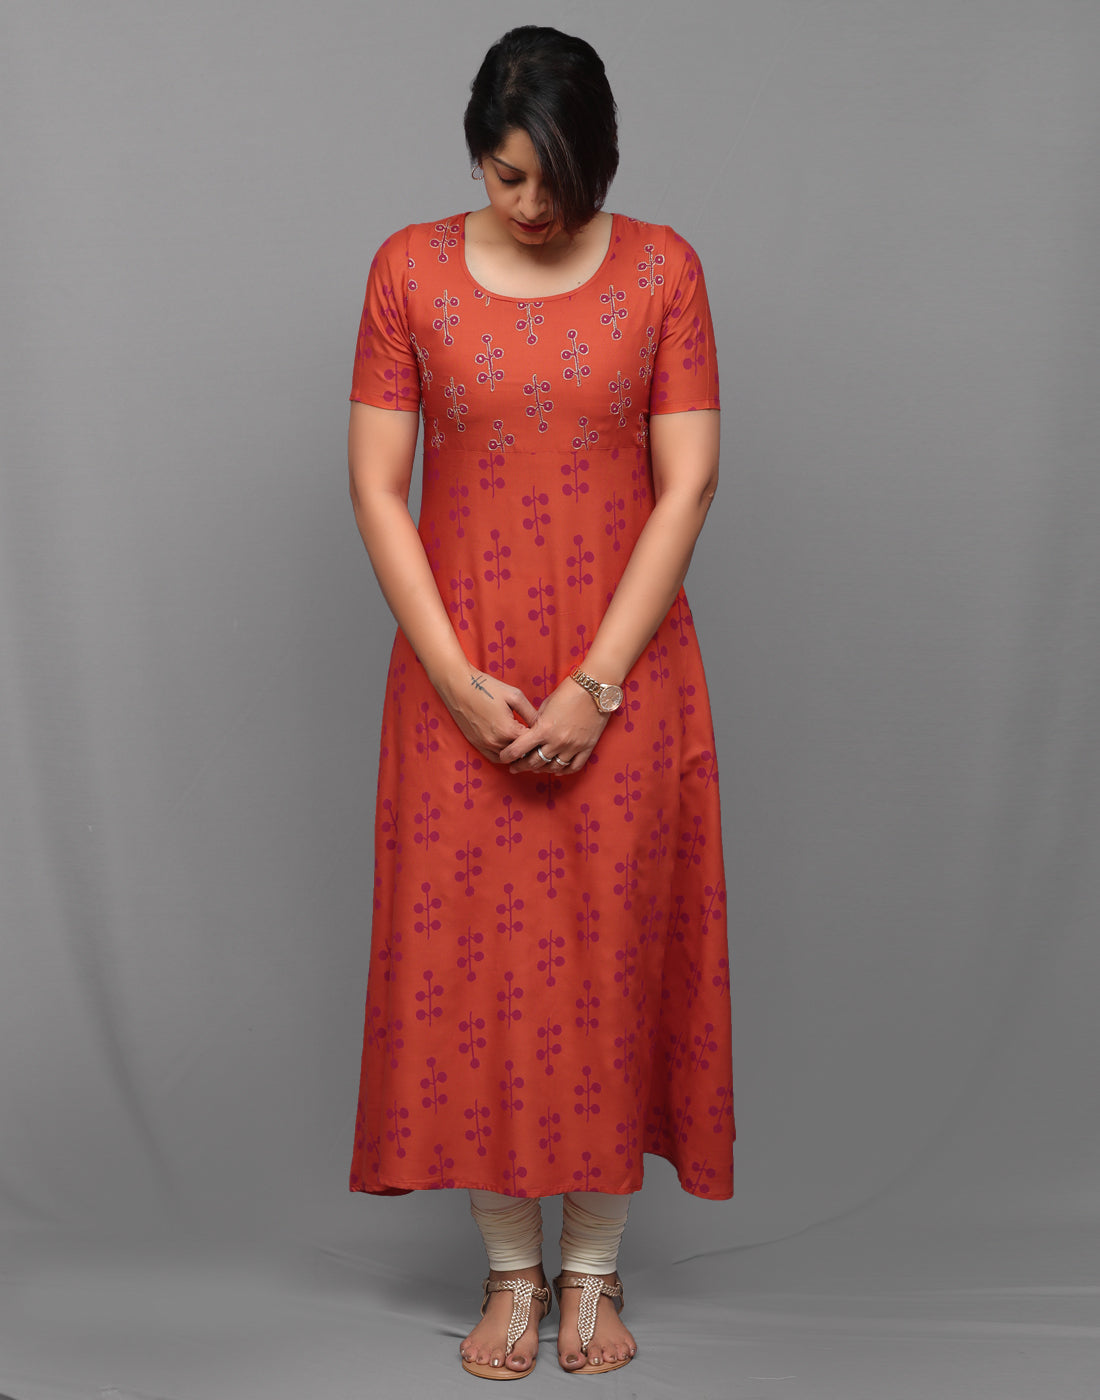 Hand Embroidered Retro Printed Orange Anarkali